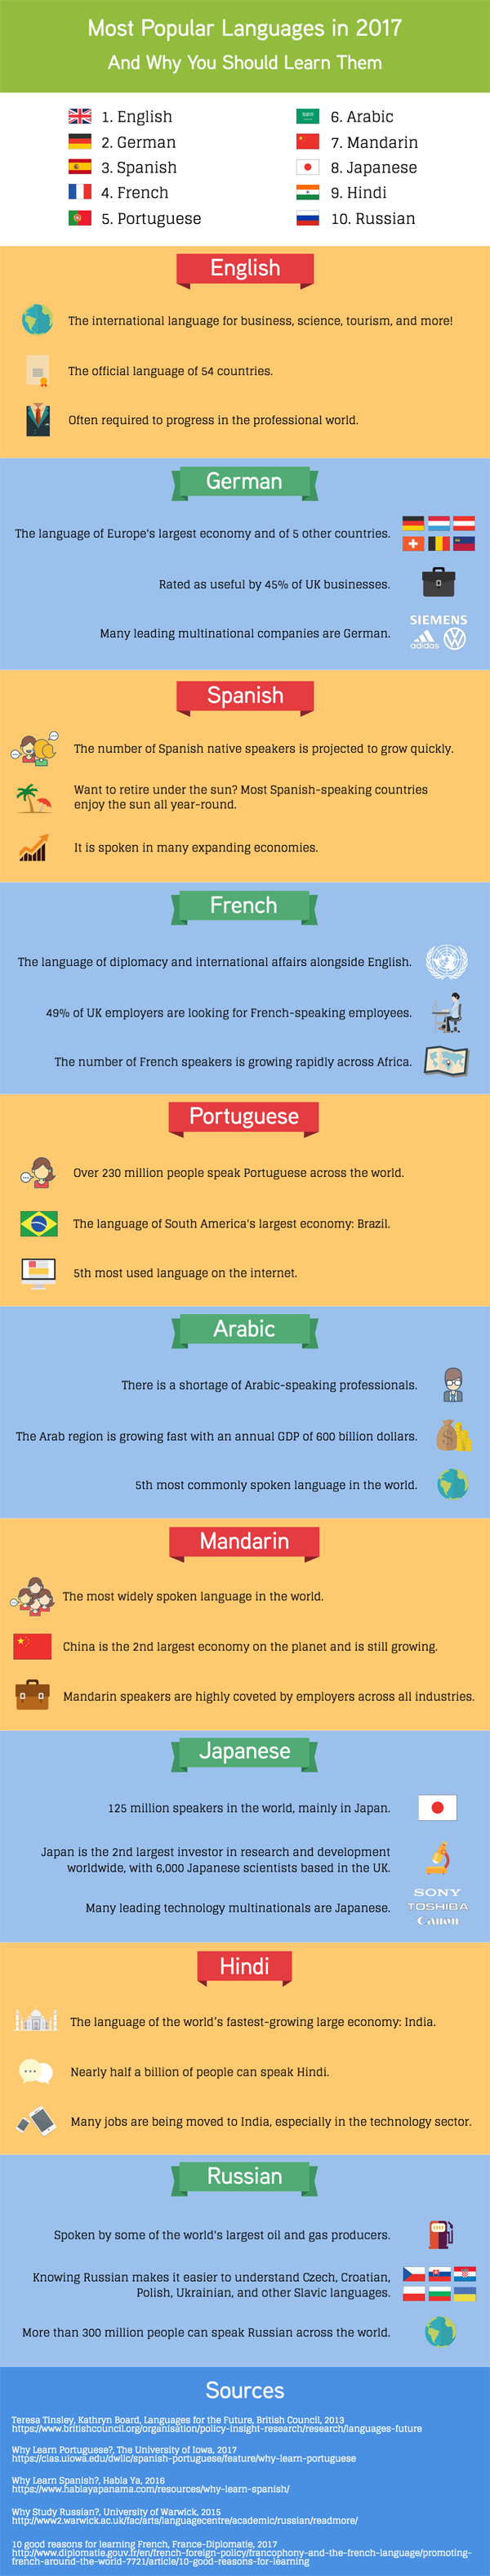 Most Popular Languages in 2017